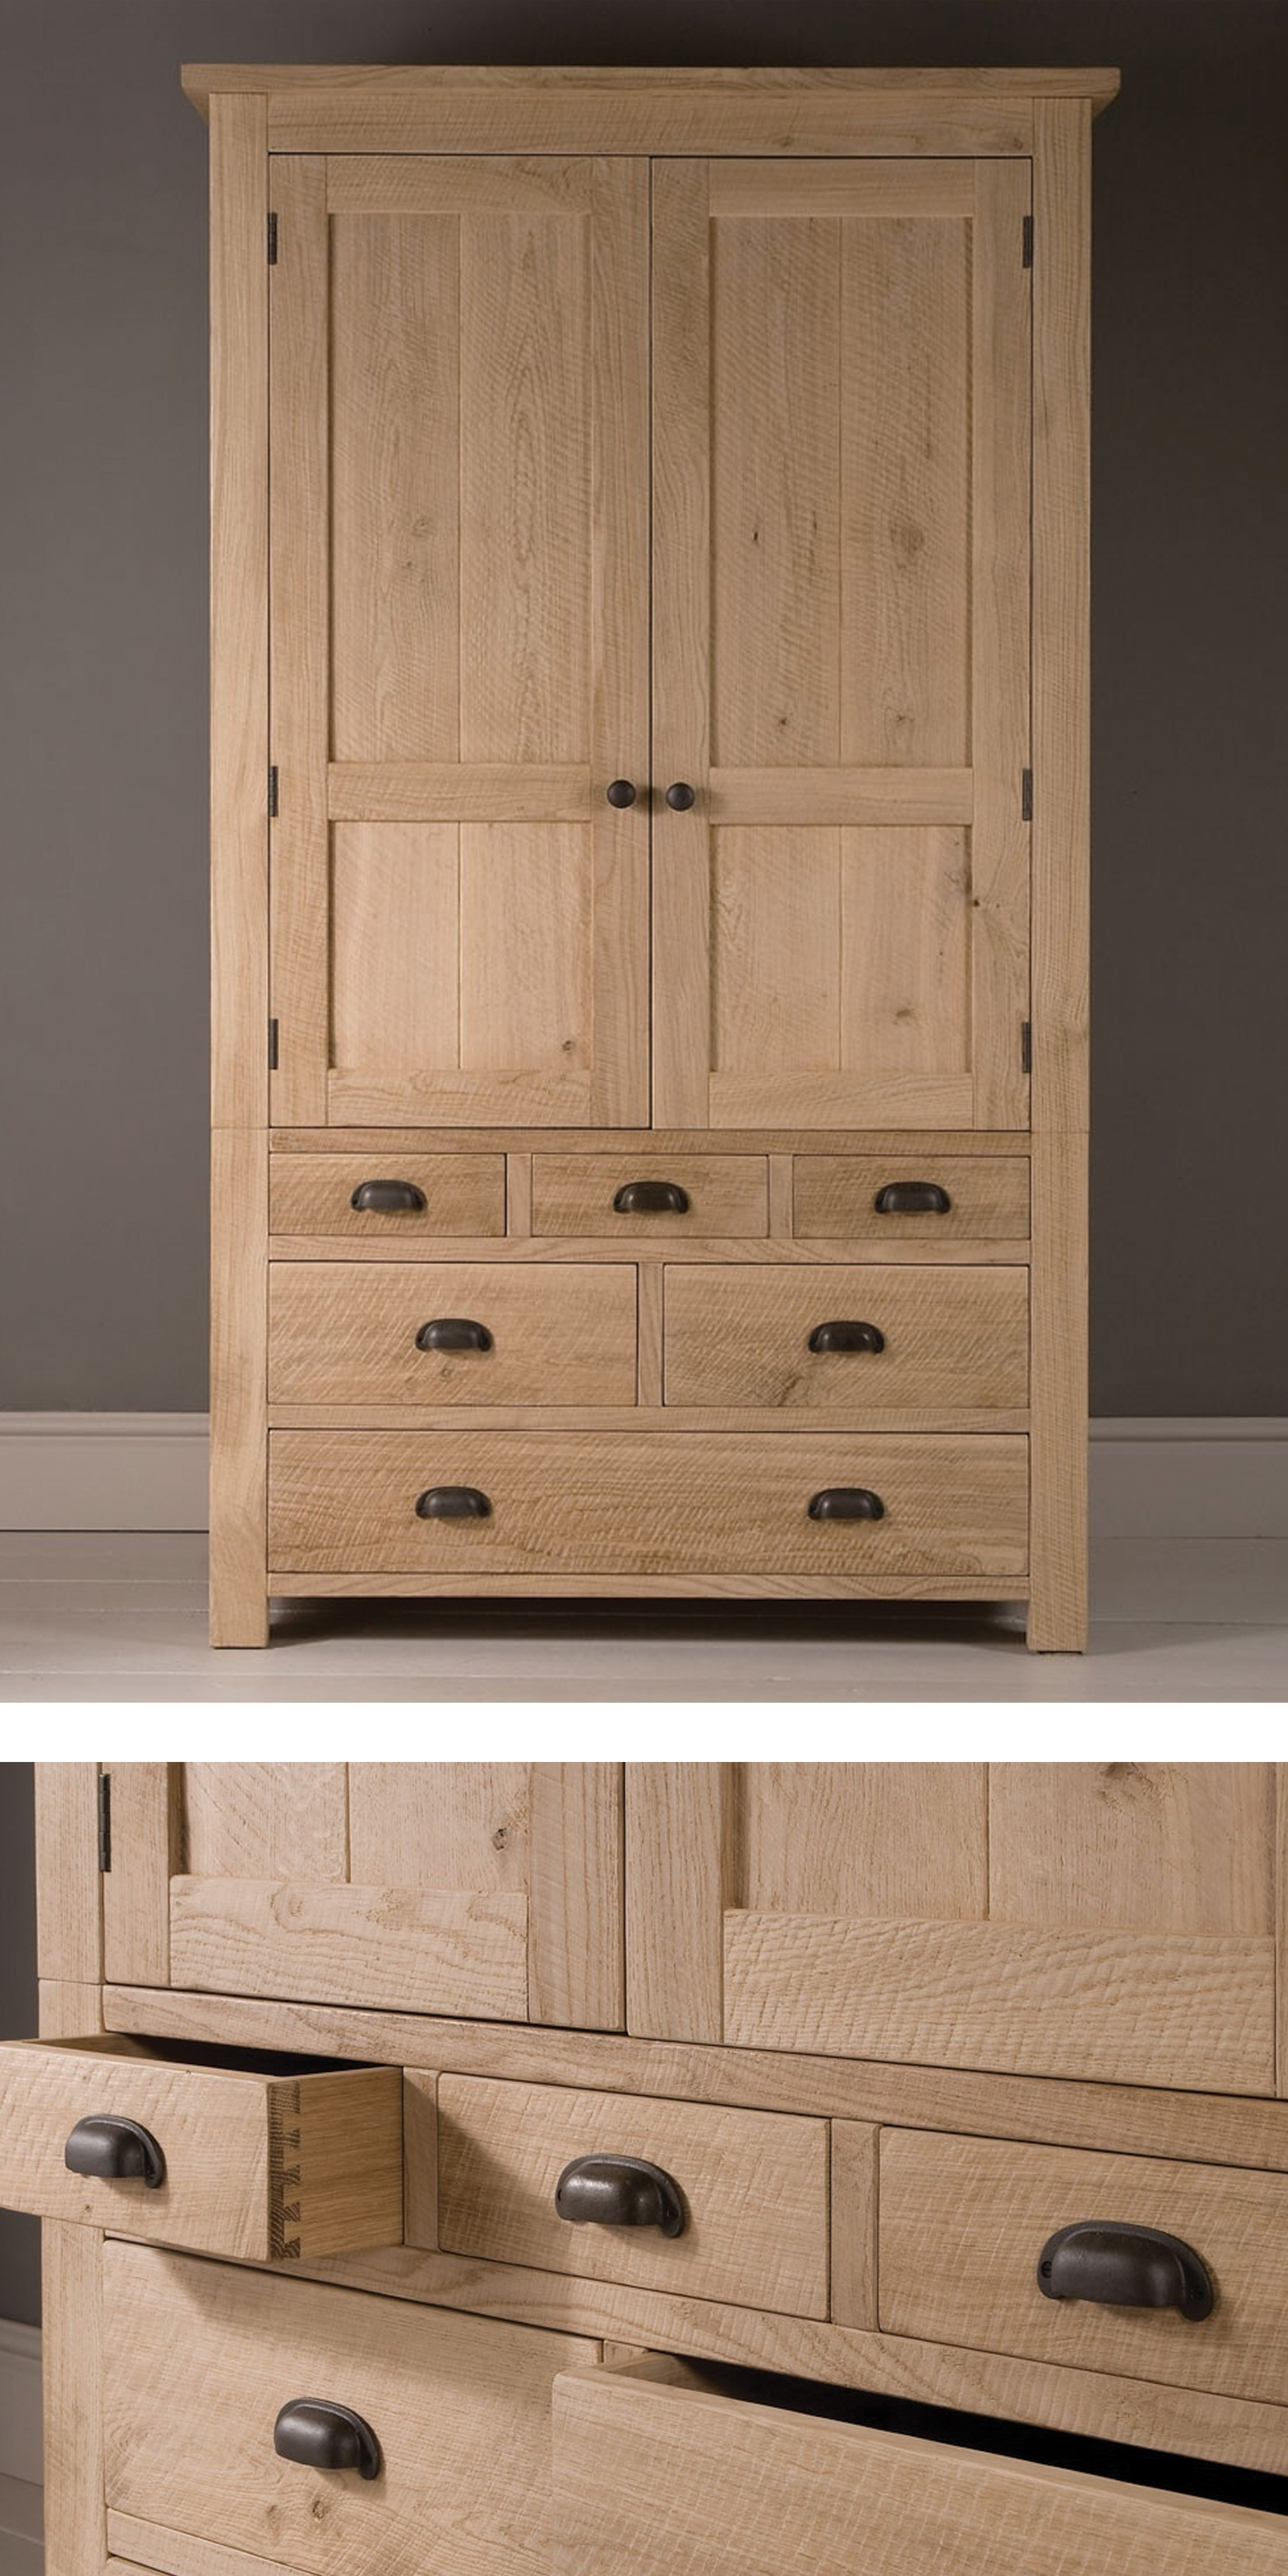 The Elegant Tall Alderman Gents Oak Wardrobe #wardrobe #bedroom With Regard To Widely Used Oak Wardrobes With Drawers And Shelves (View 14 of 15)